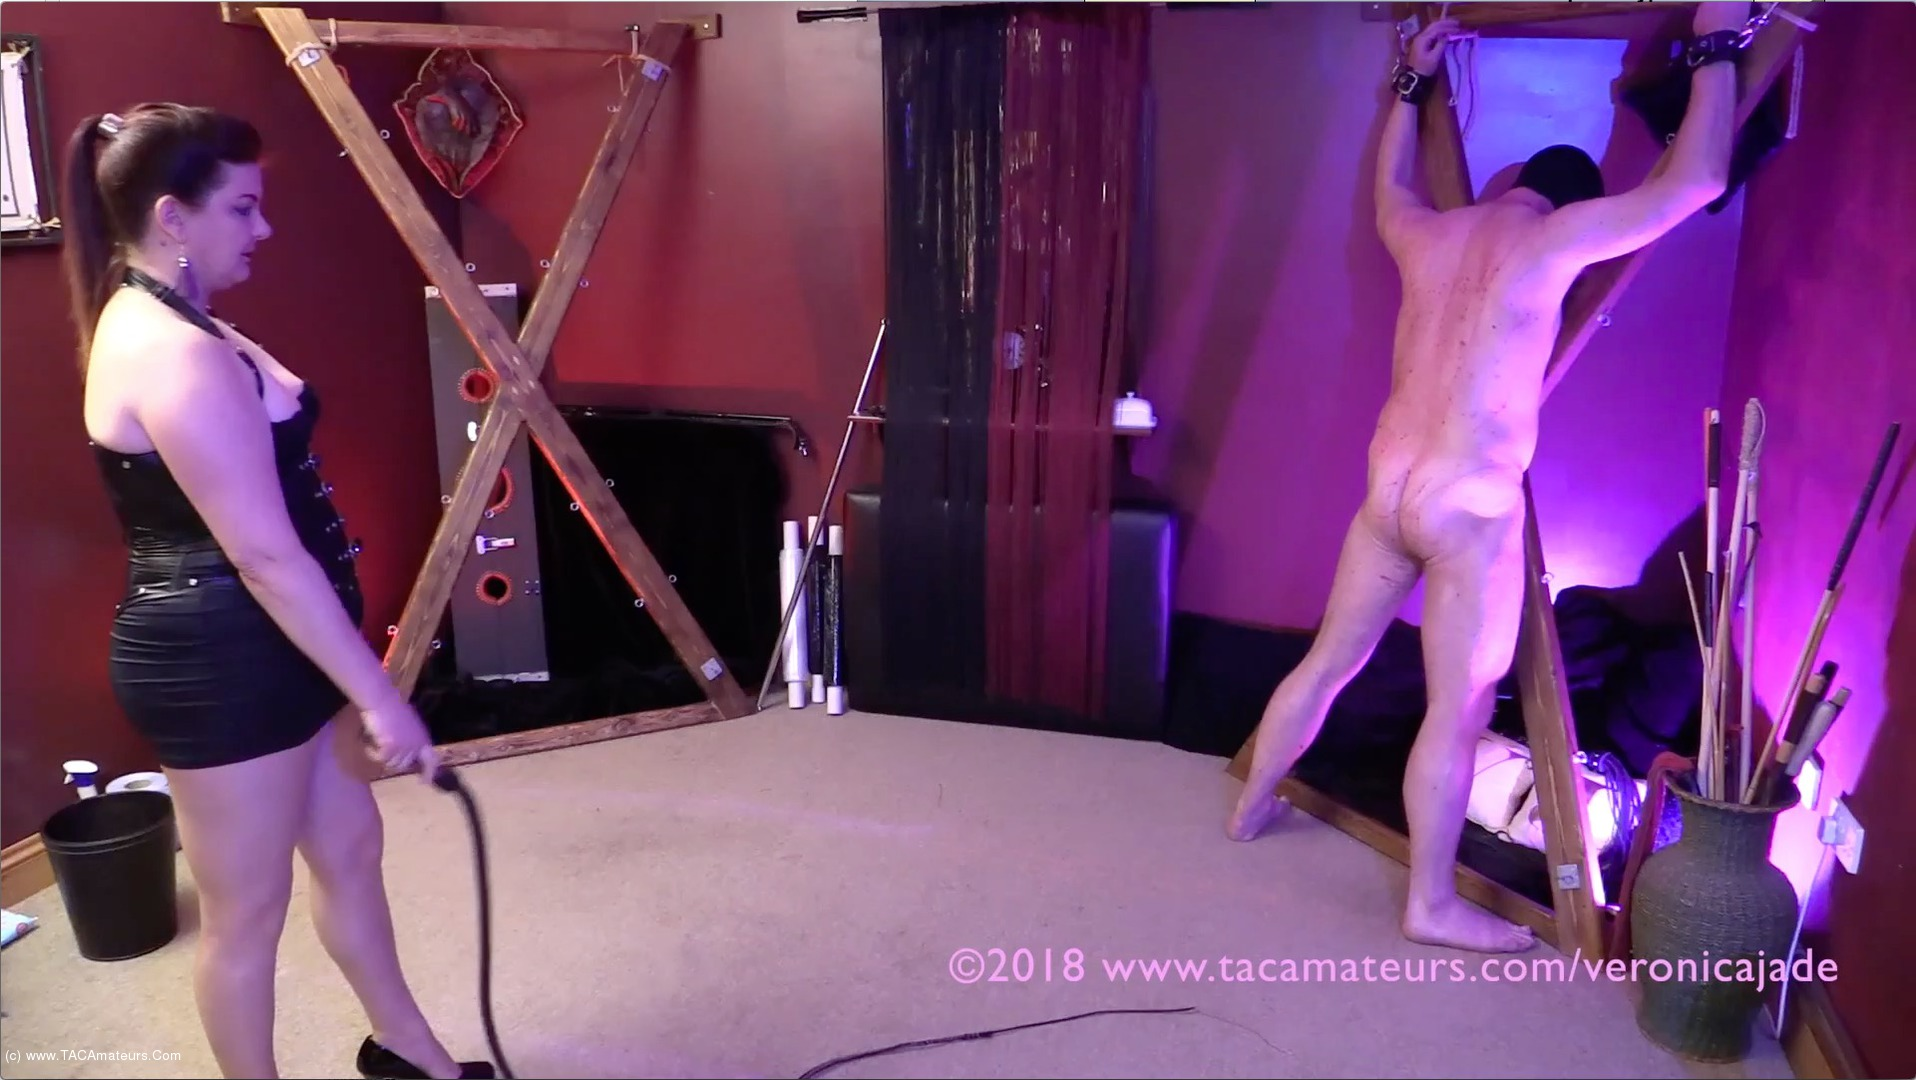 VeronicaJade - Whipping Time Pt3 scene 2